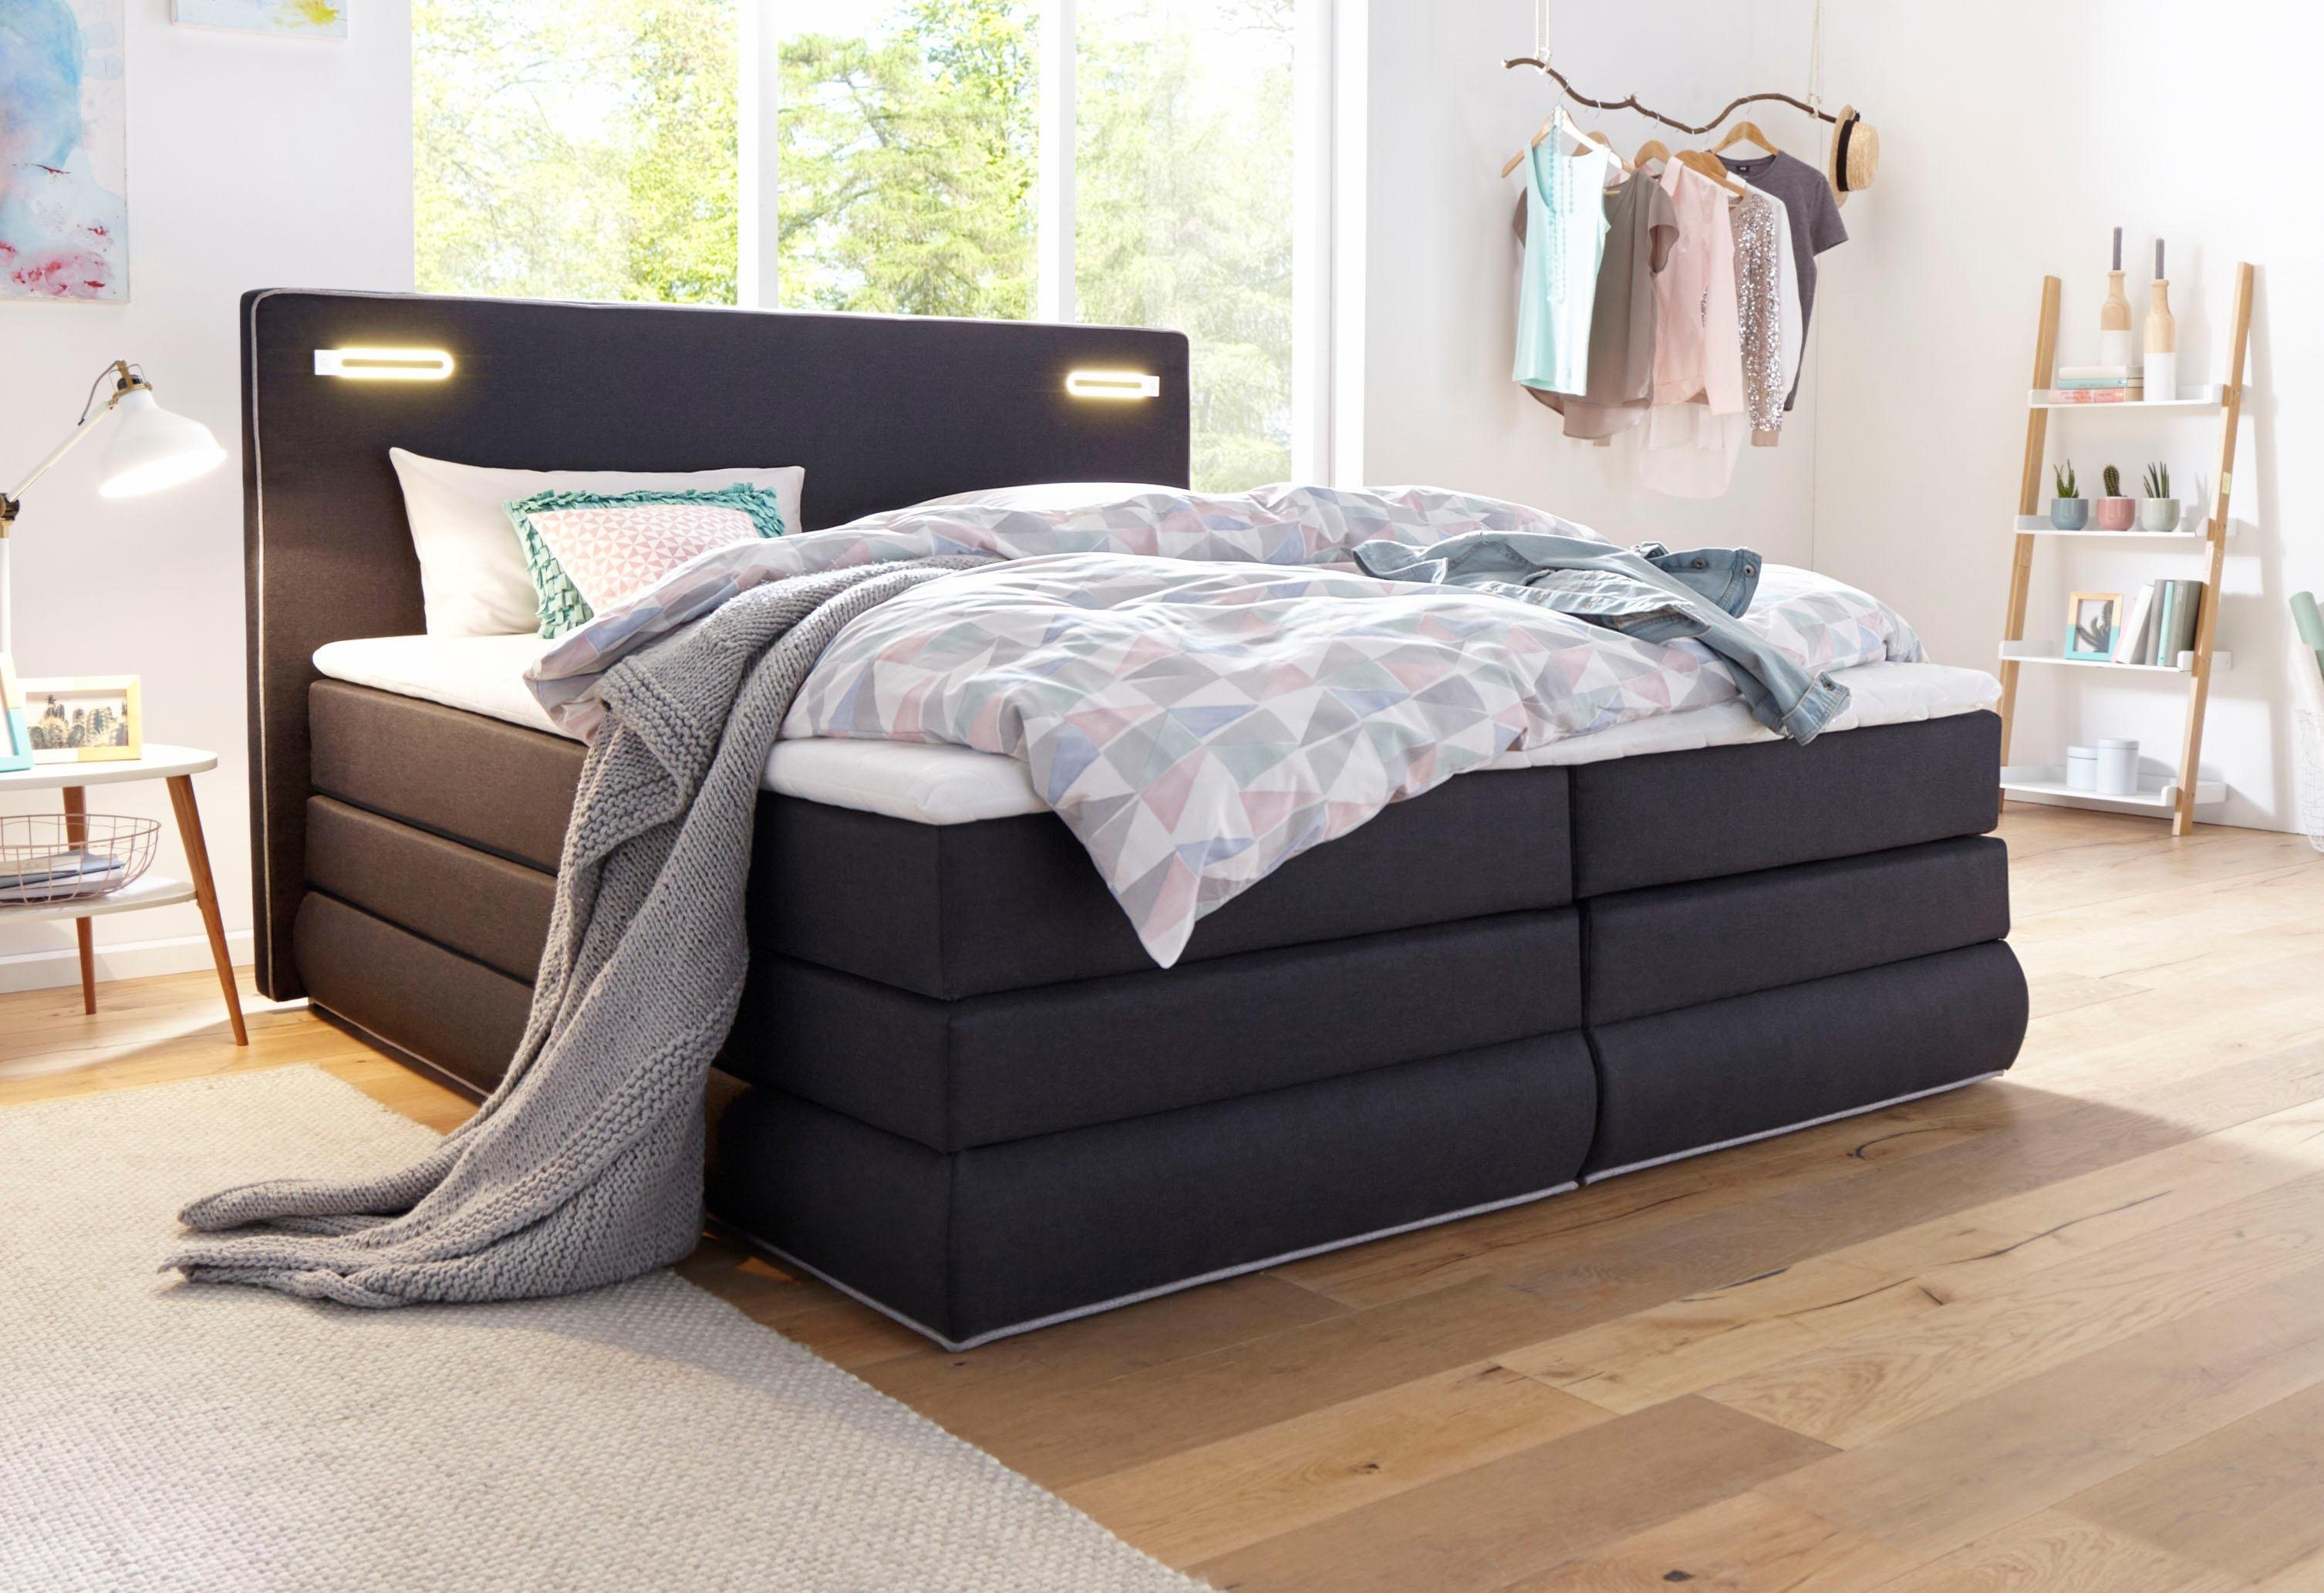 boxspringbetten 180x200 cm mit bettkasten im angebot cherry m bel home24 ikea otto. Black Bedroom Furniture Sets. Home Design Ideas